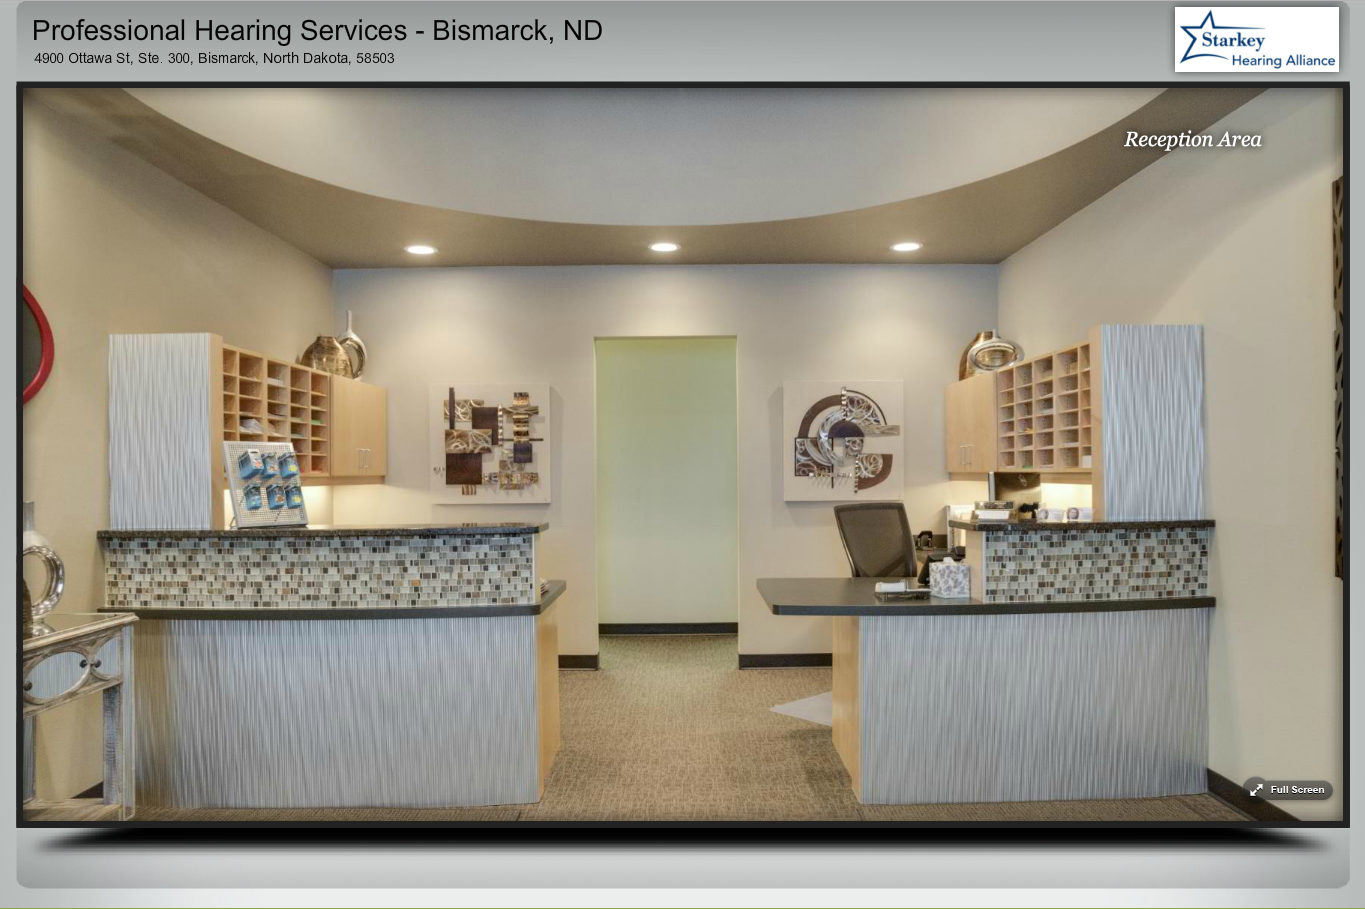 Hearing Center Virtual Tour